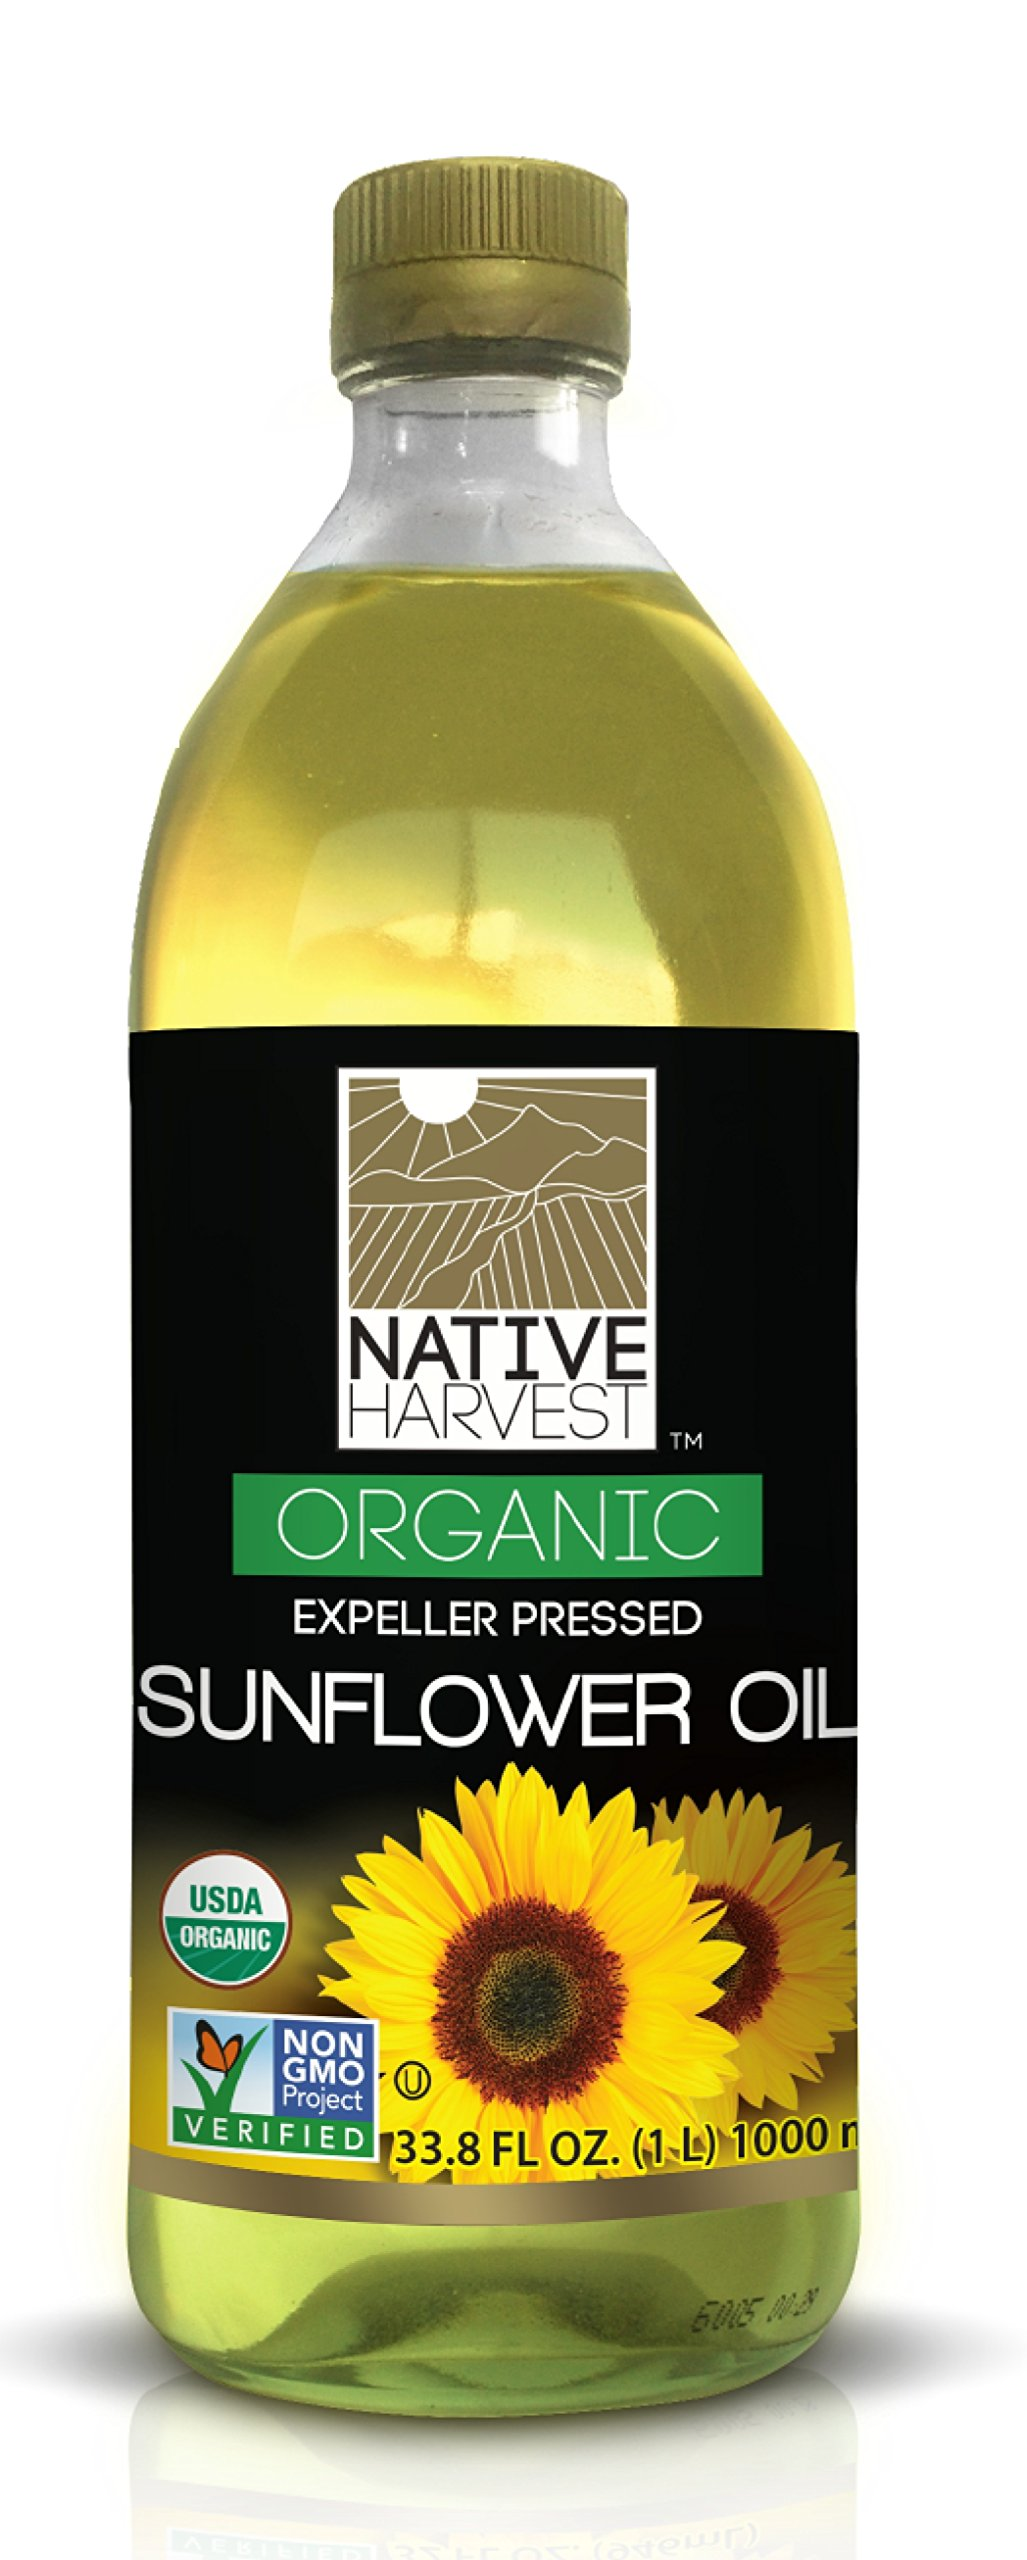 Native Harvest Organic Non-GMO Naturally Expeller Pressed Sunflower Oil, 1 Litre (33.8 FL OZ) by Native Harvest (Image #1)